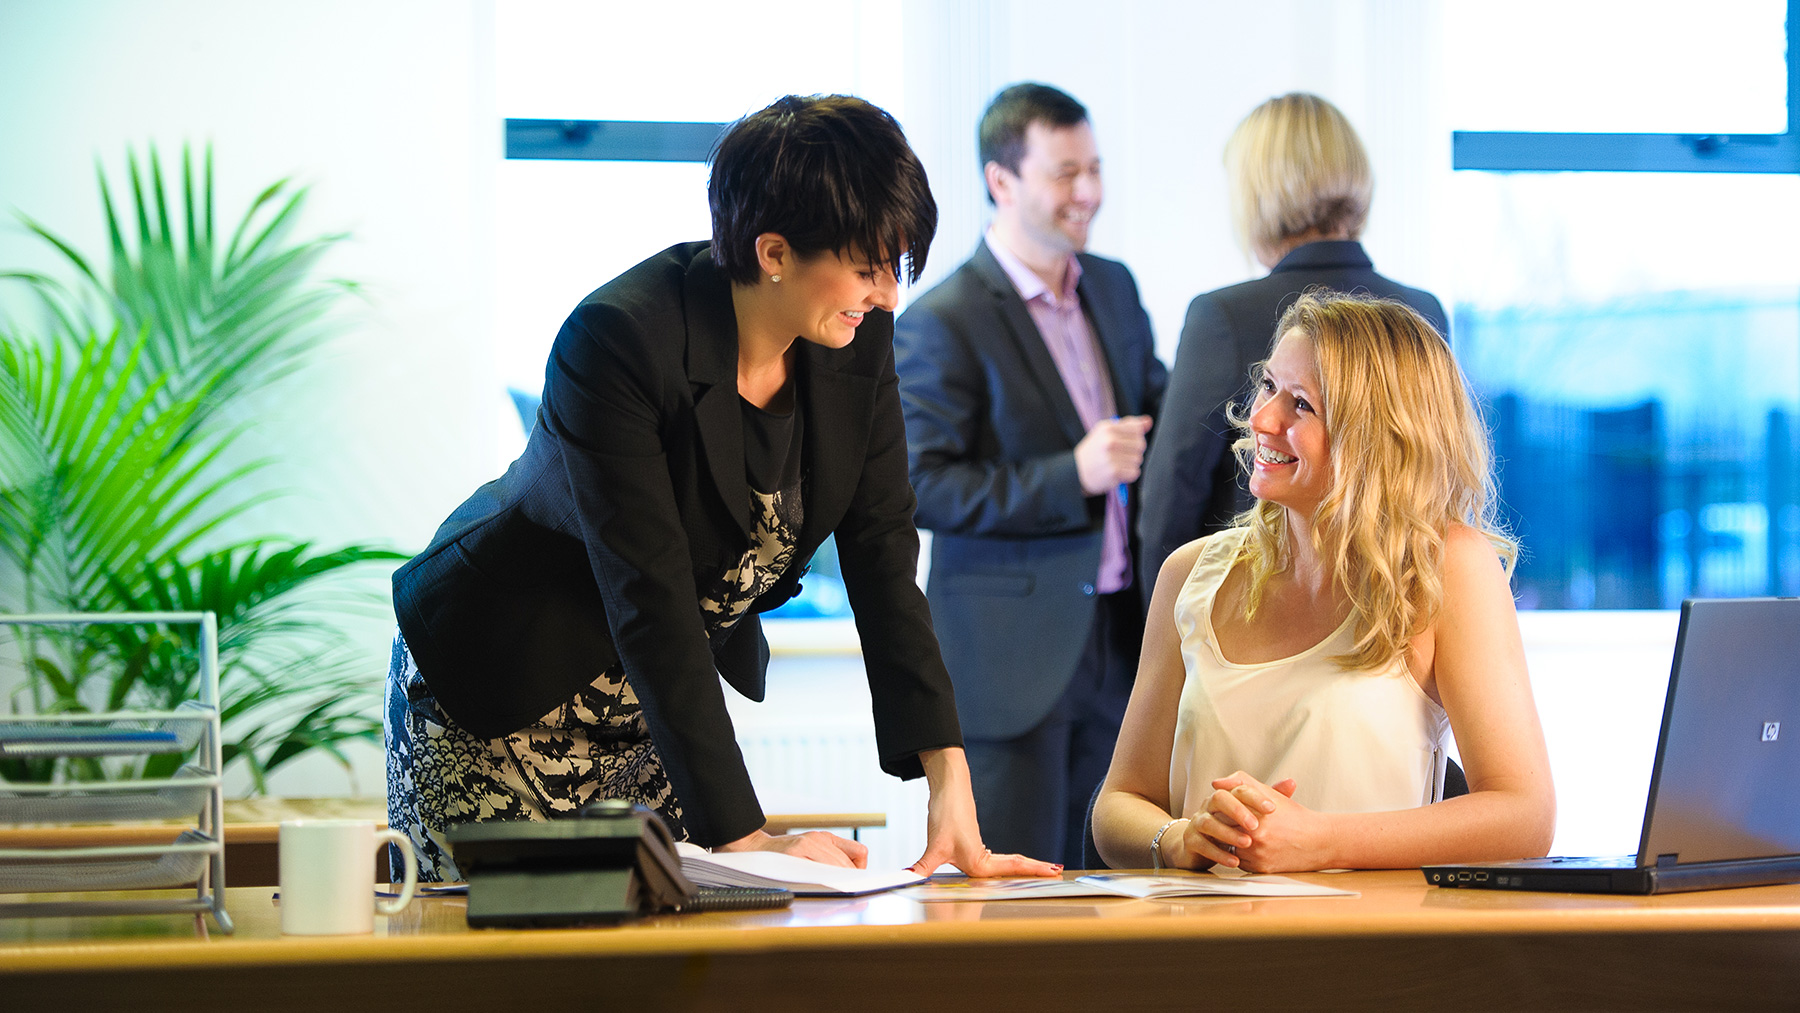 Two professional women interact in a bright and modern office